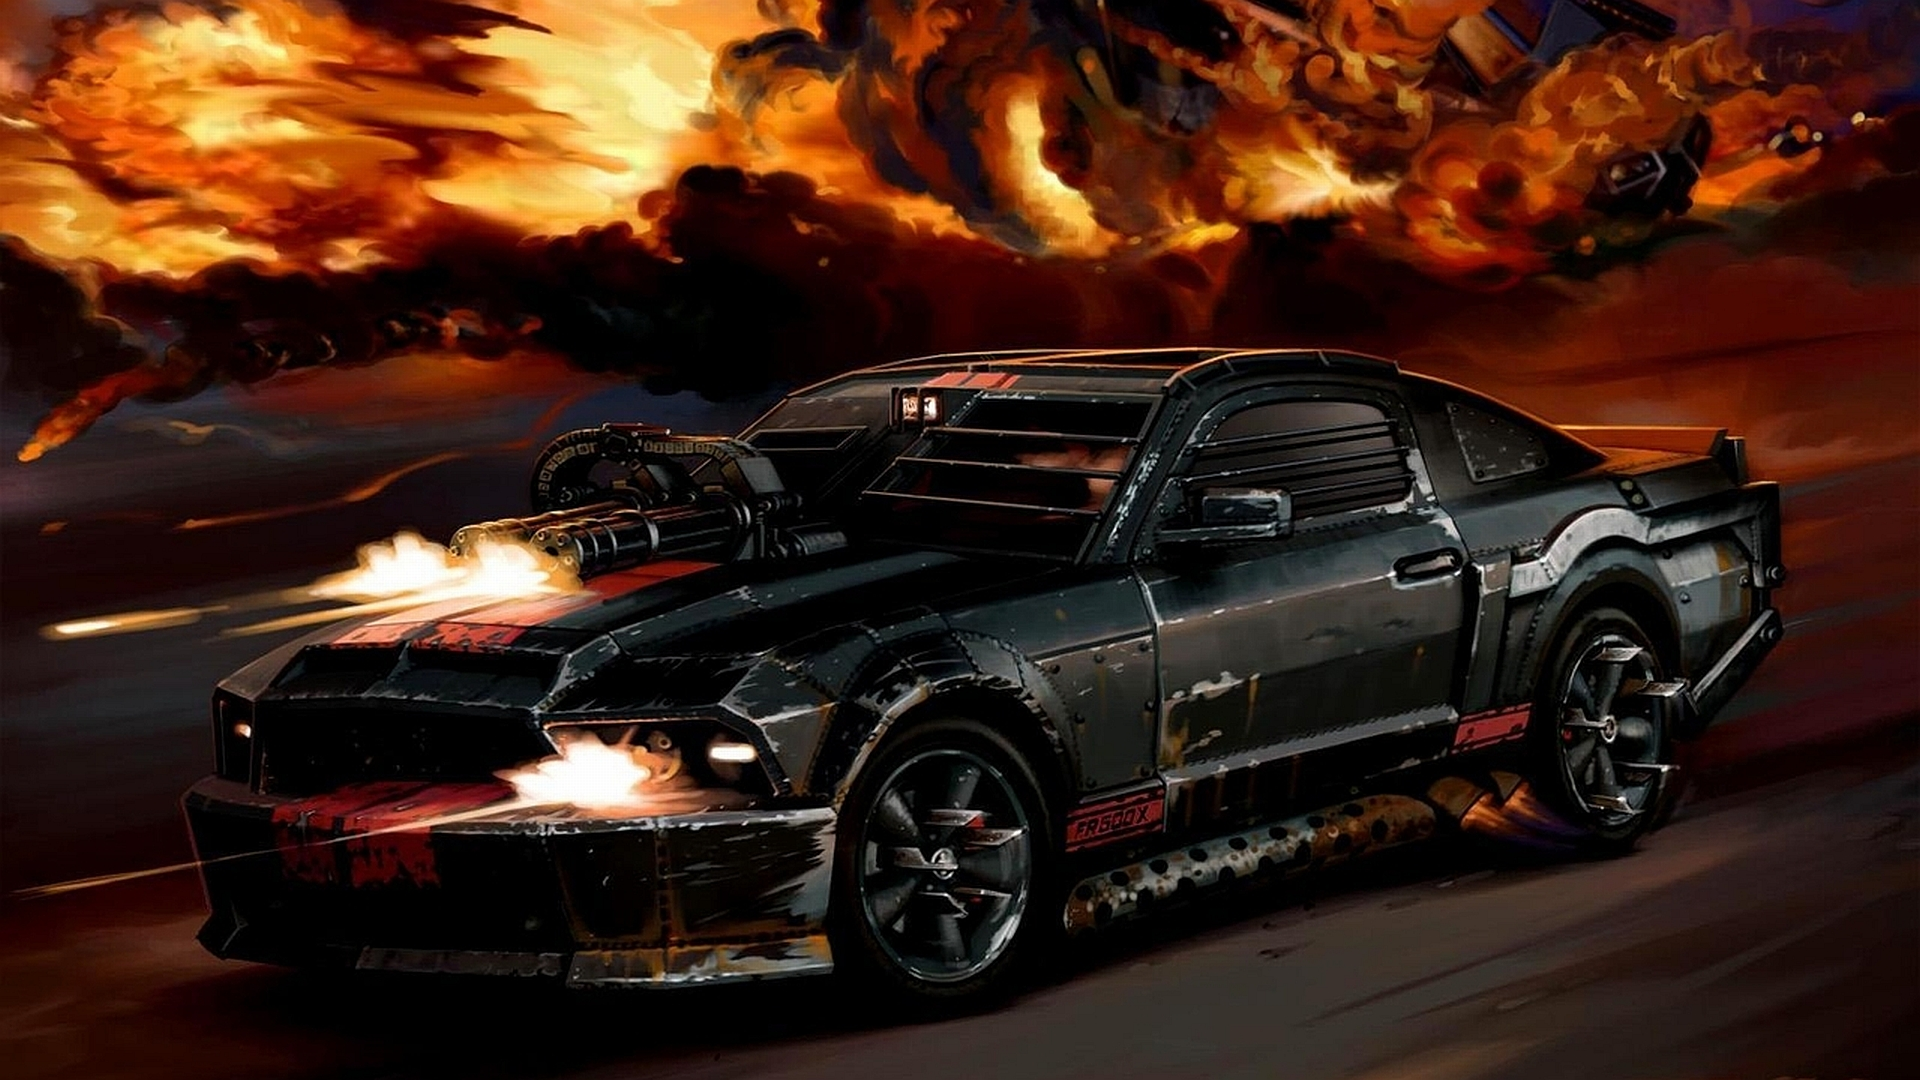 Death Race Car Racing Game